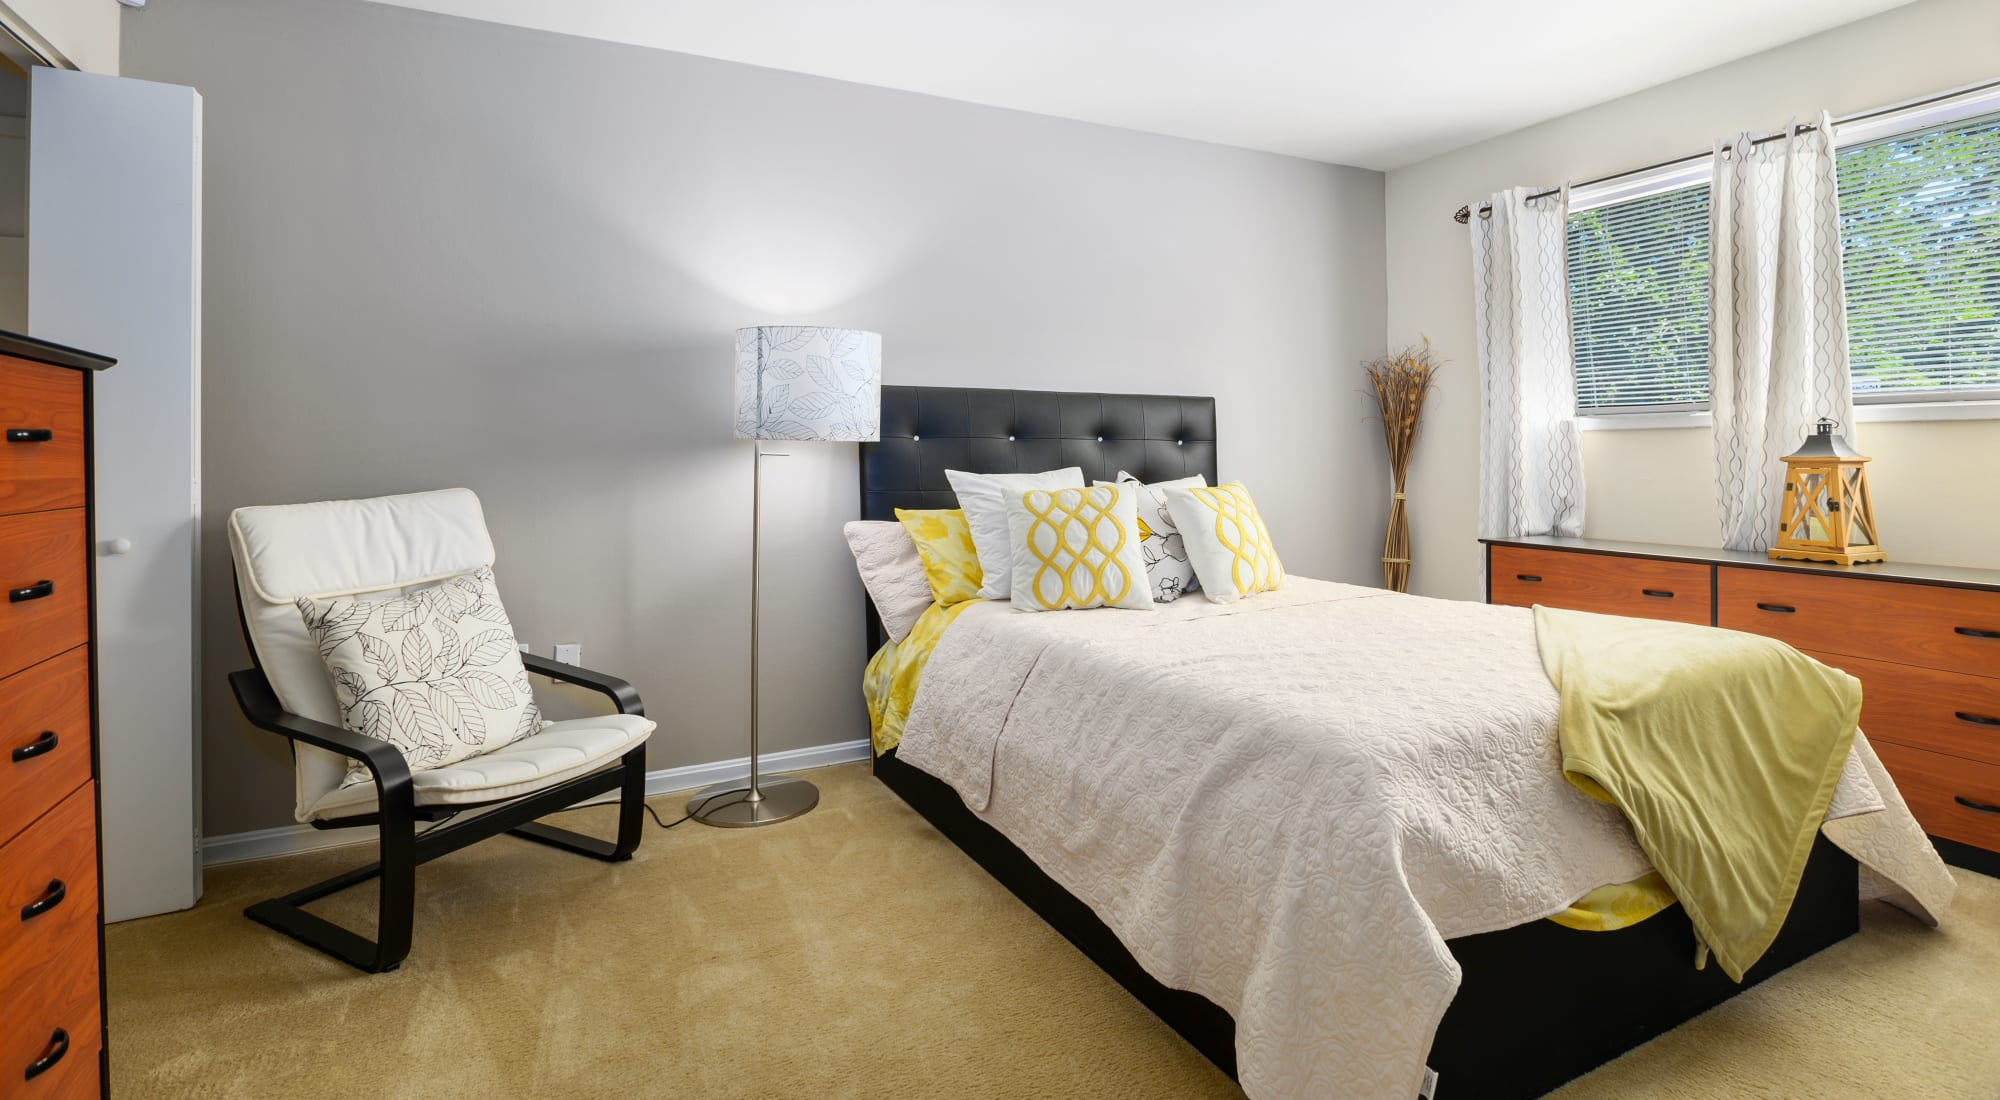 Modern decor in the bedroom of a model home at Capital Crossing in Suitland, Maryland